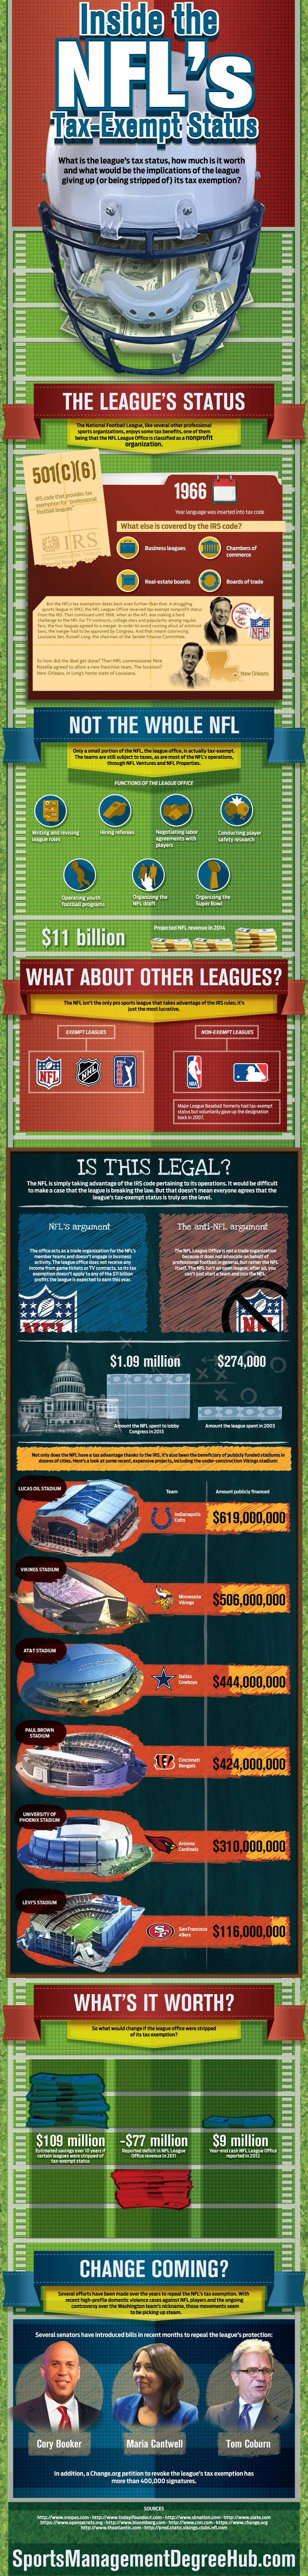 Inside the NFL's Tax-Exempt Status